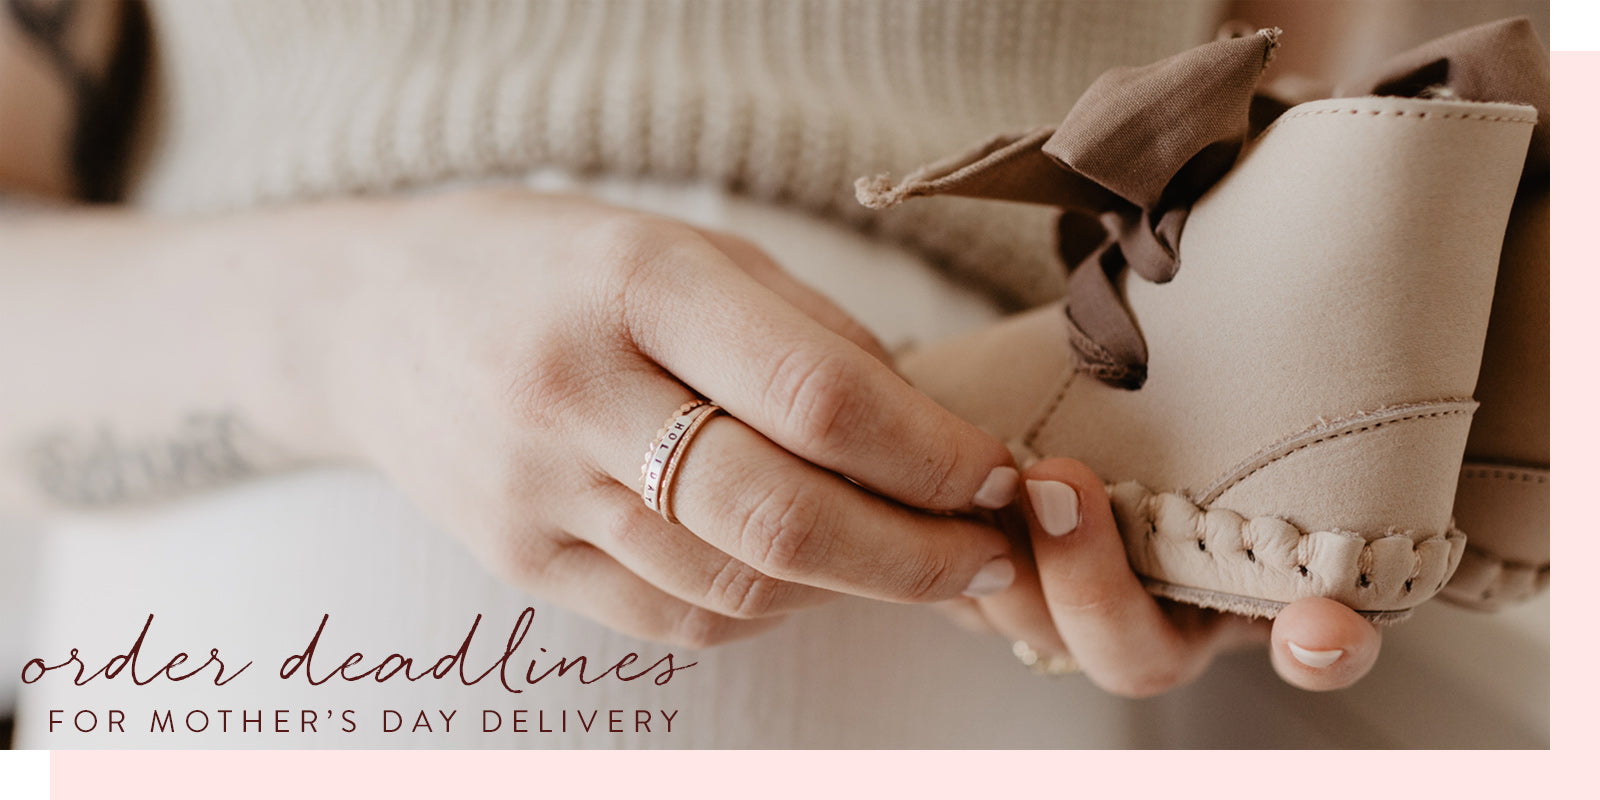 order deadlines for mother's day delivery